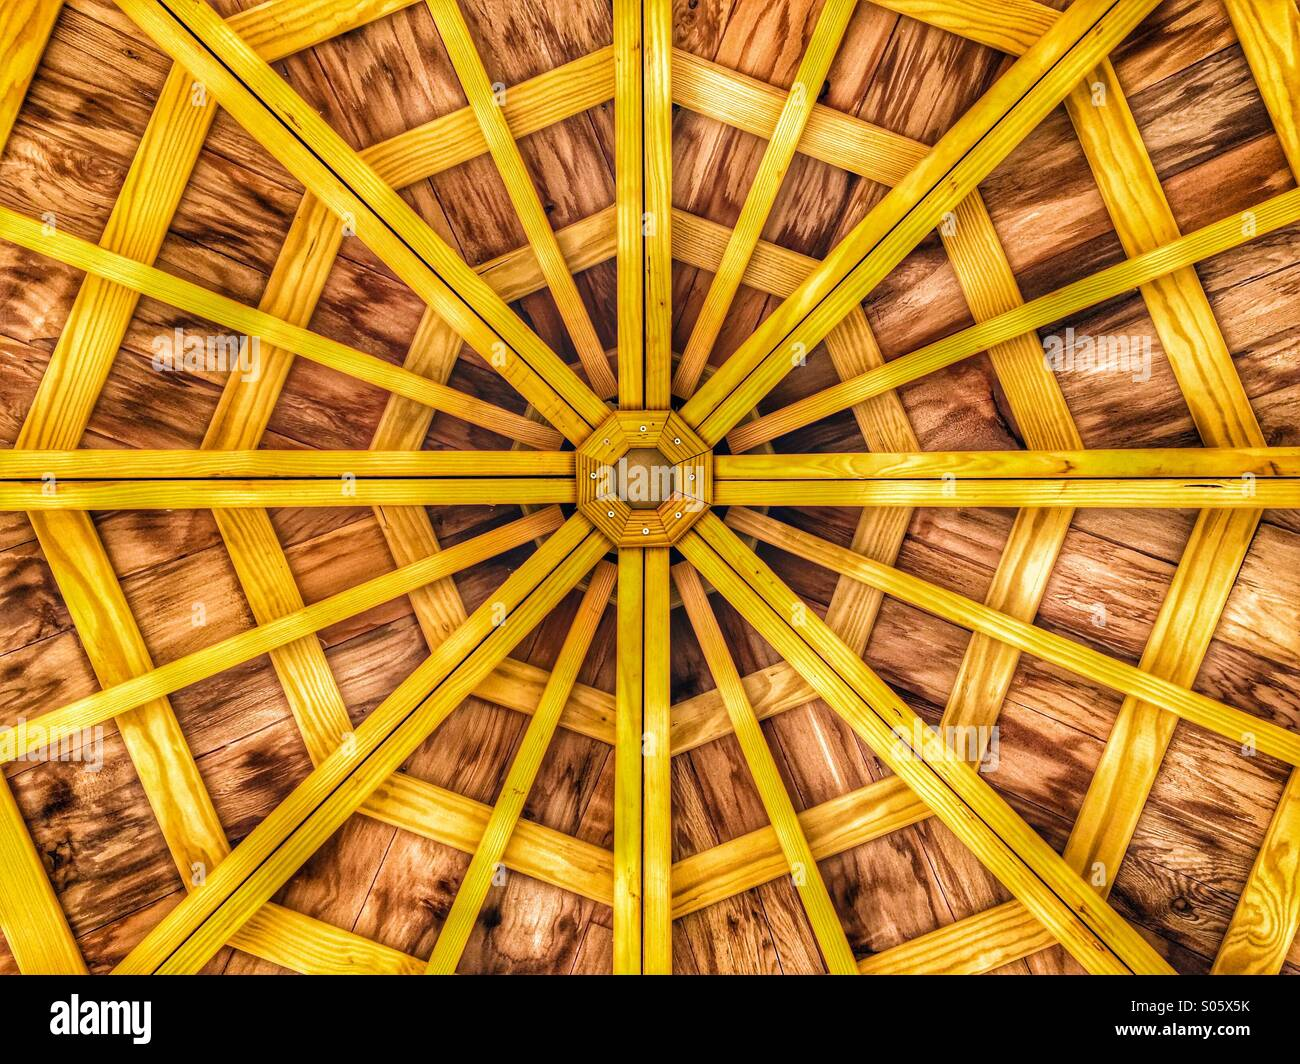 Gazebo roof - Stock Image